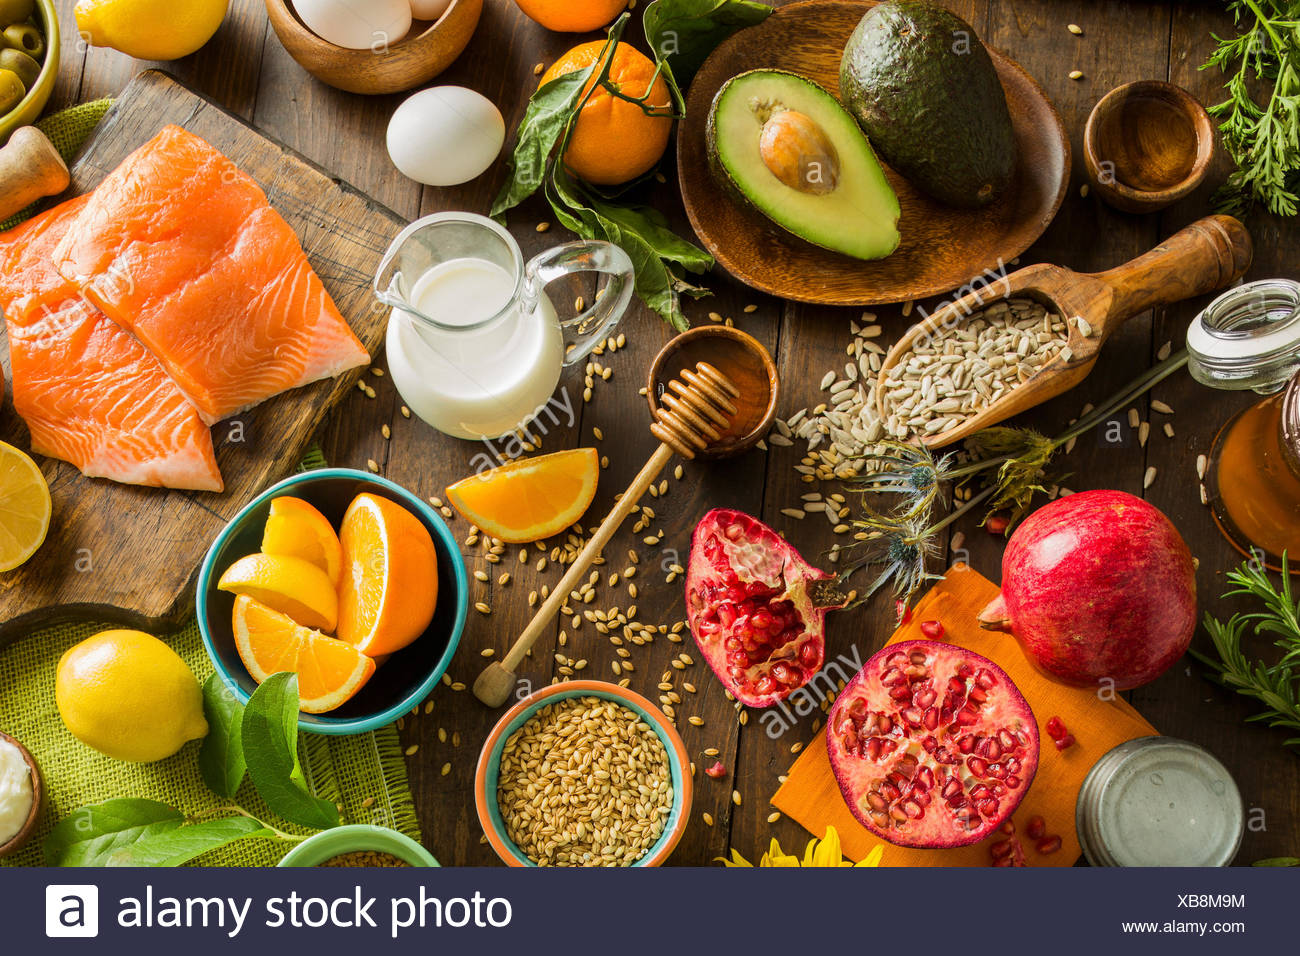 Overhead view of messy table with various fruits and seeds - Stock Image